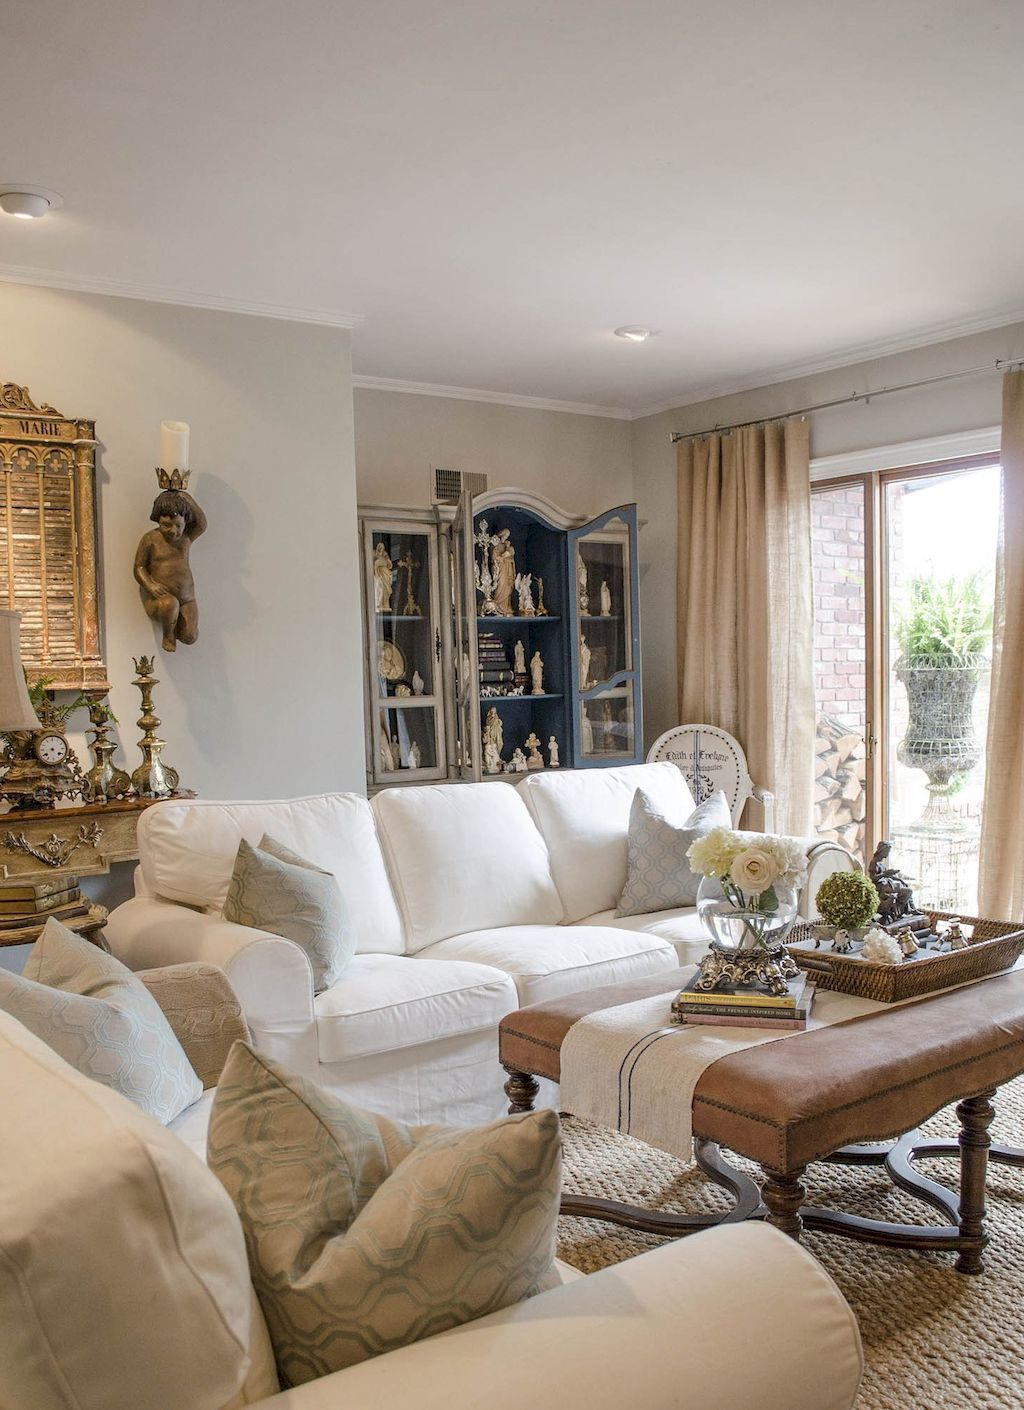 Glass Table Sets For Living Room House French Country Living with regard to French Country Living Room Sets